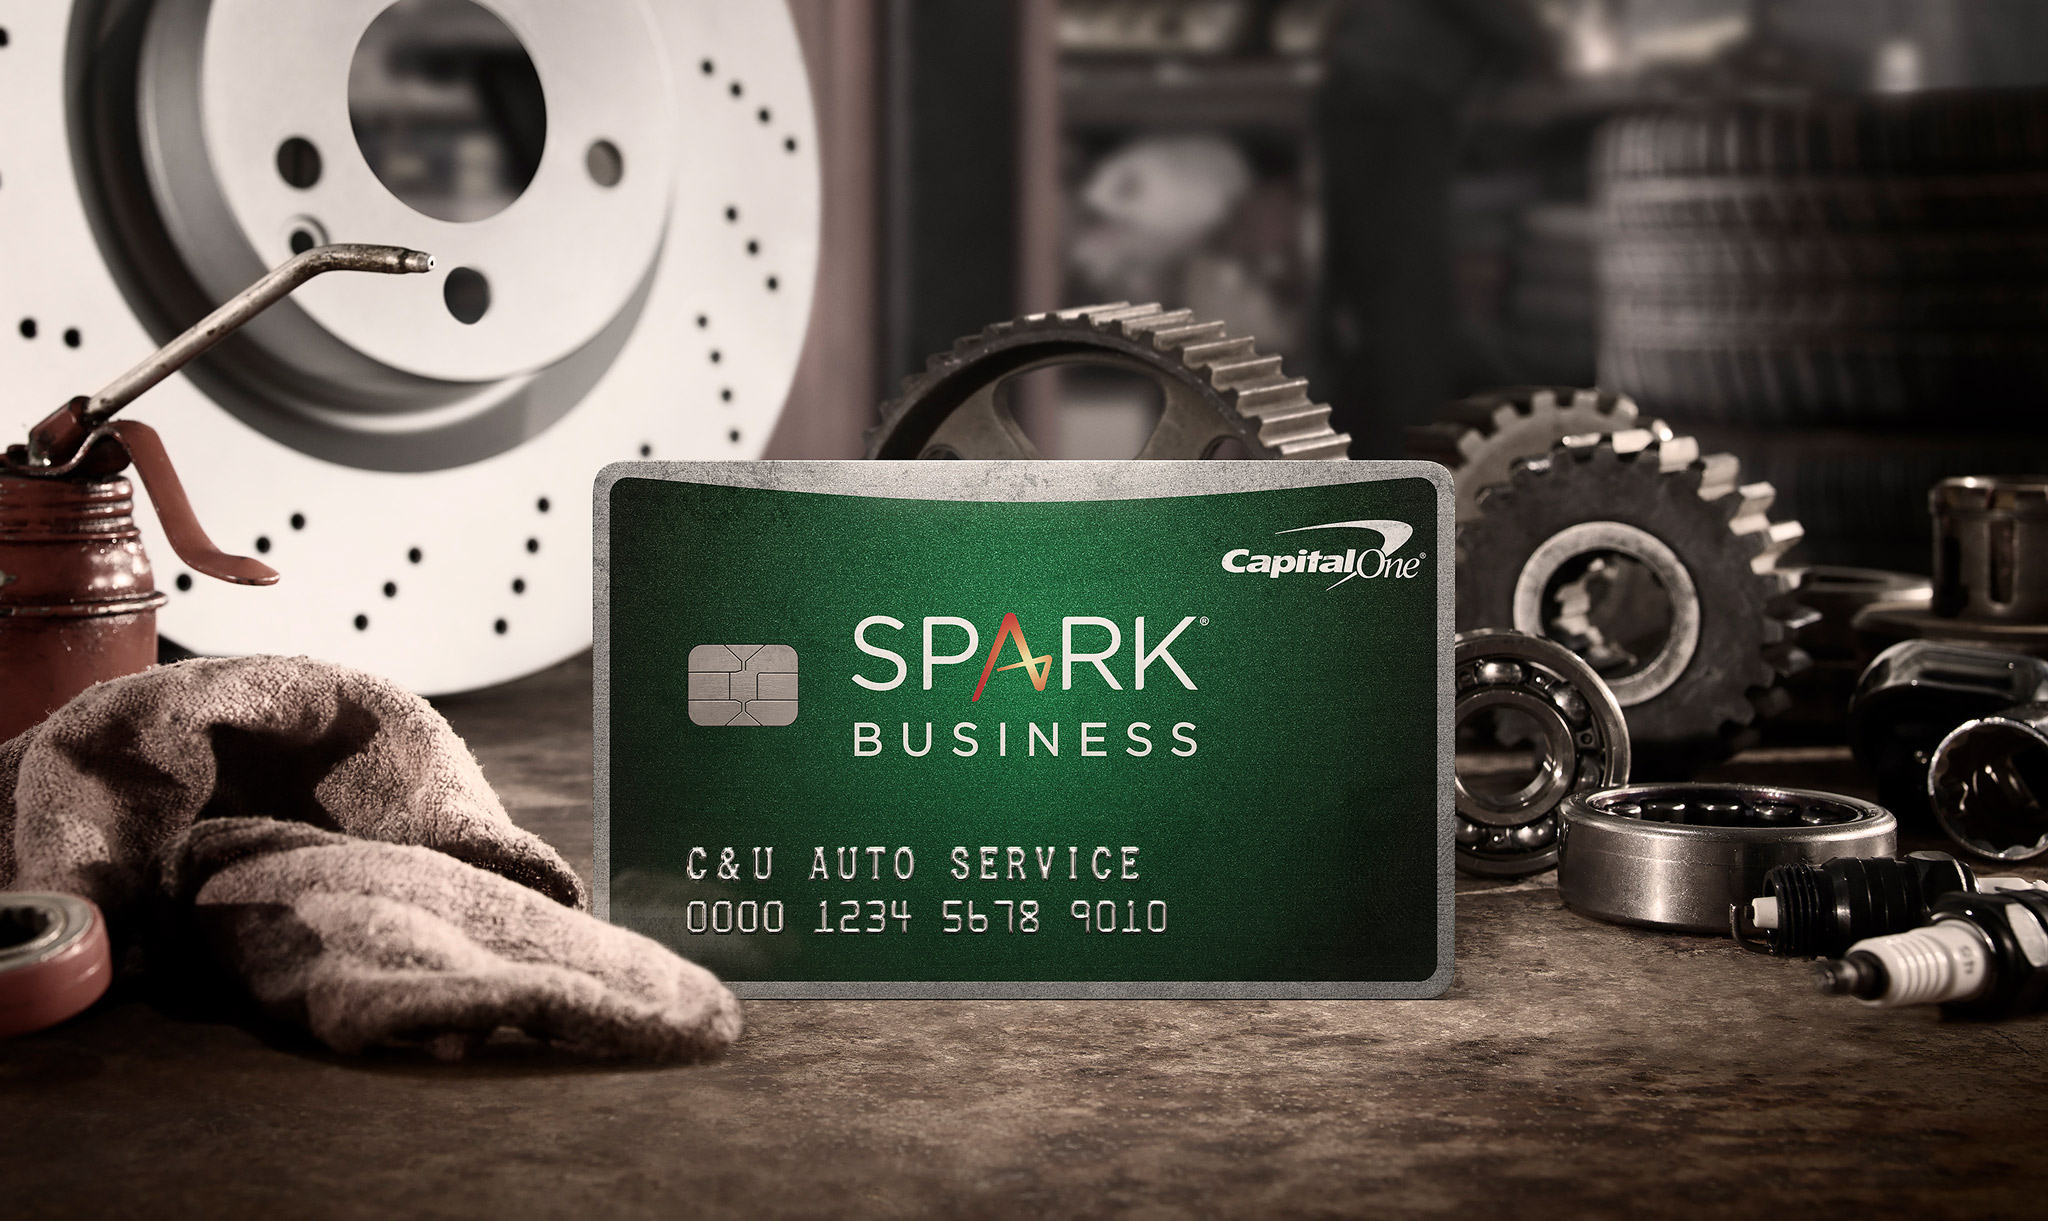 Capital One | Spark Business Card